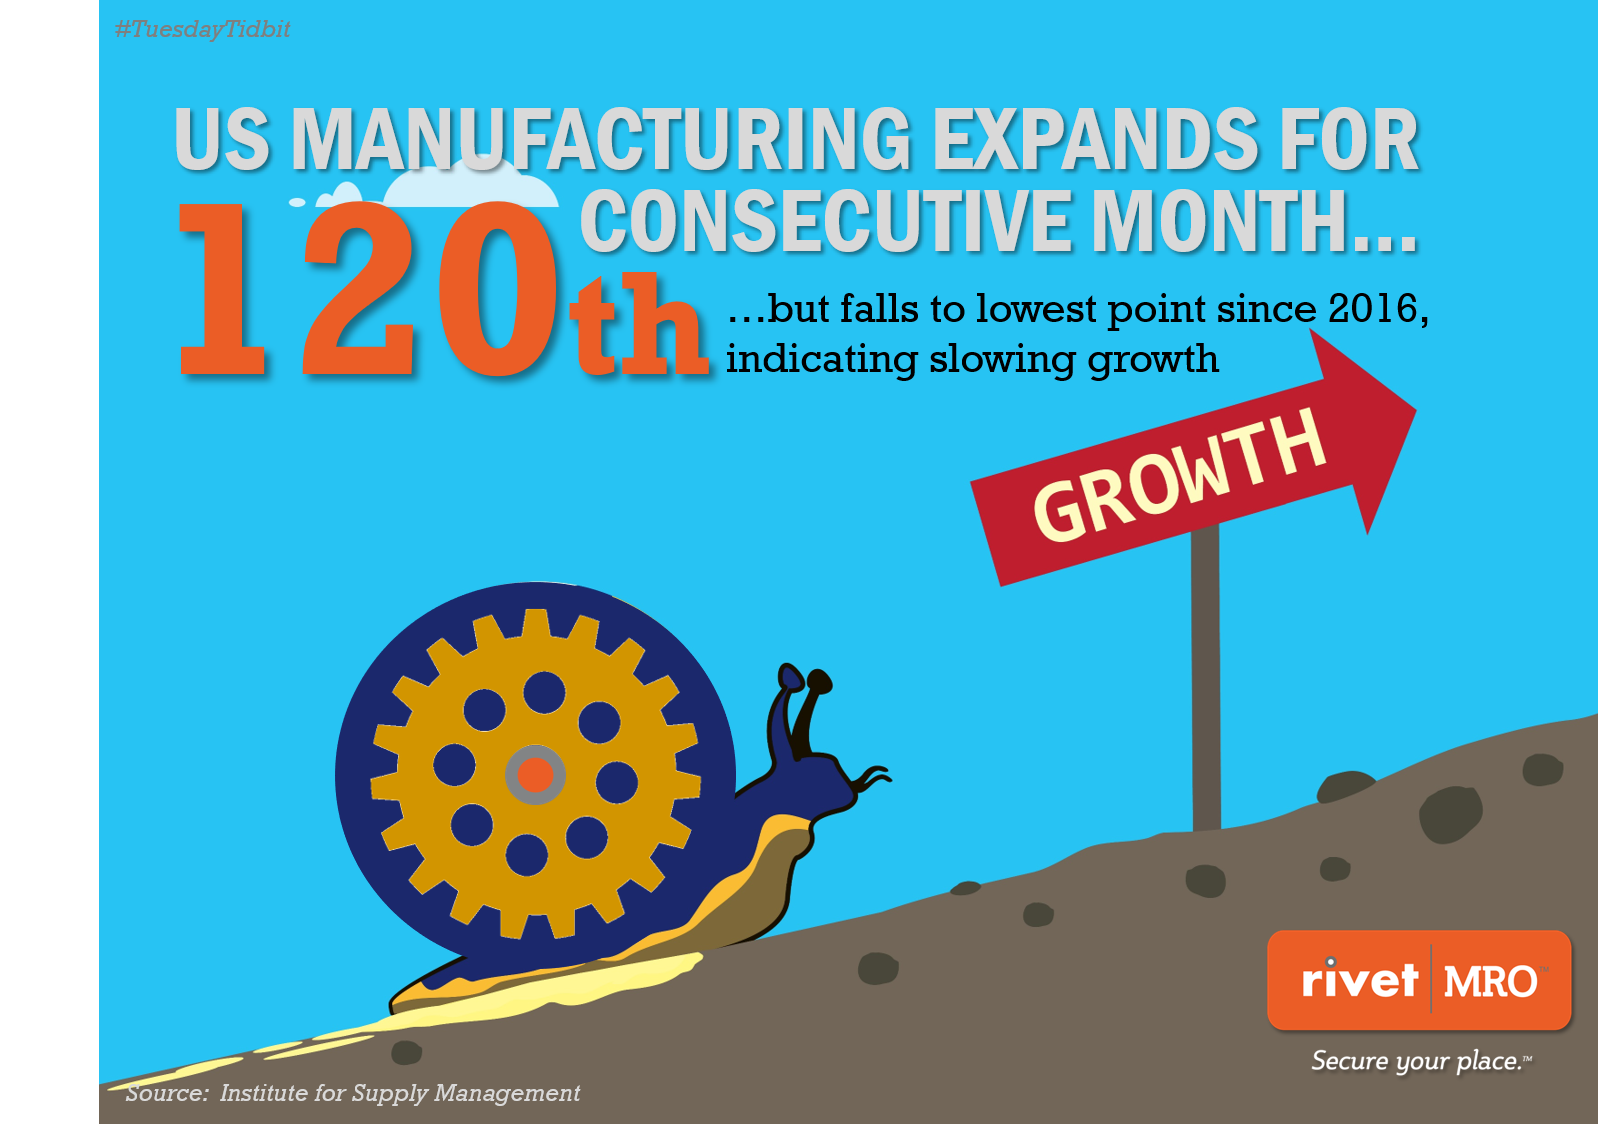 ISM Slowing Growth 2019 Tuesday Tidbit for  Independent Industrial Distributors by Rivet MRO Industrial Distributor Marketing Agency and Co-op Marketing Consultant.png